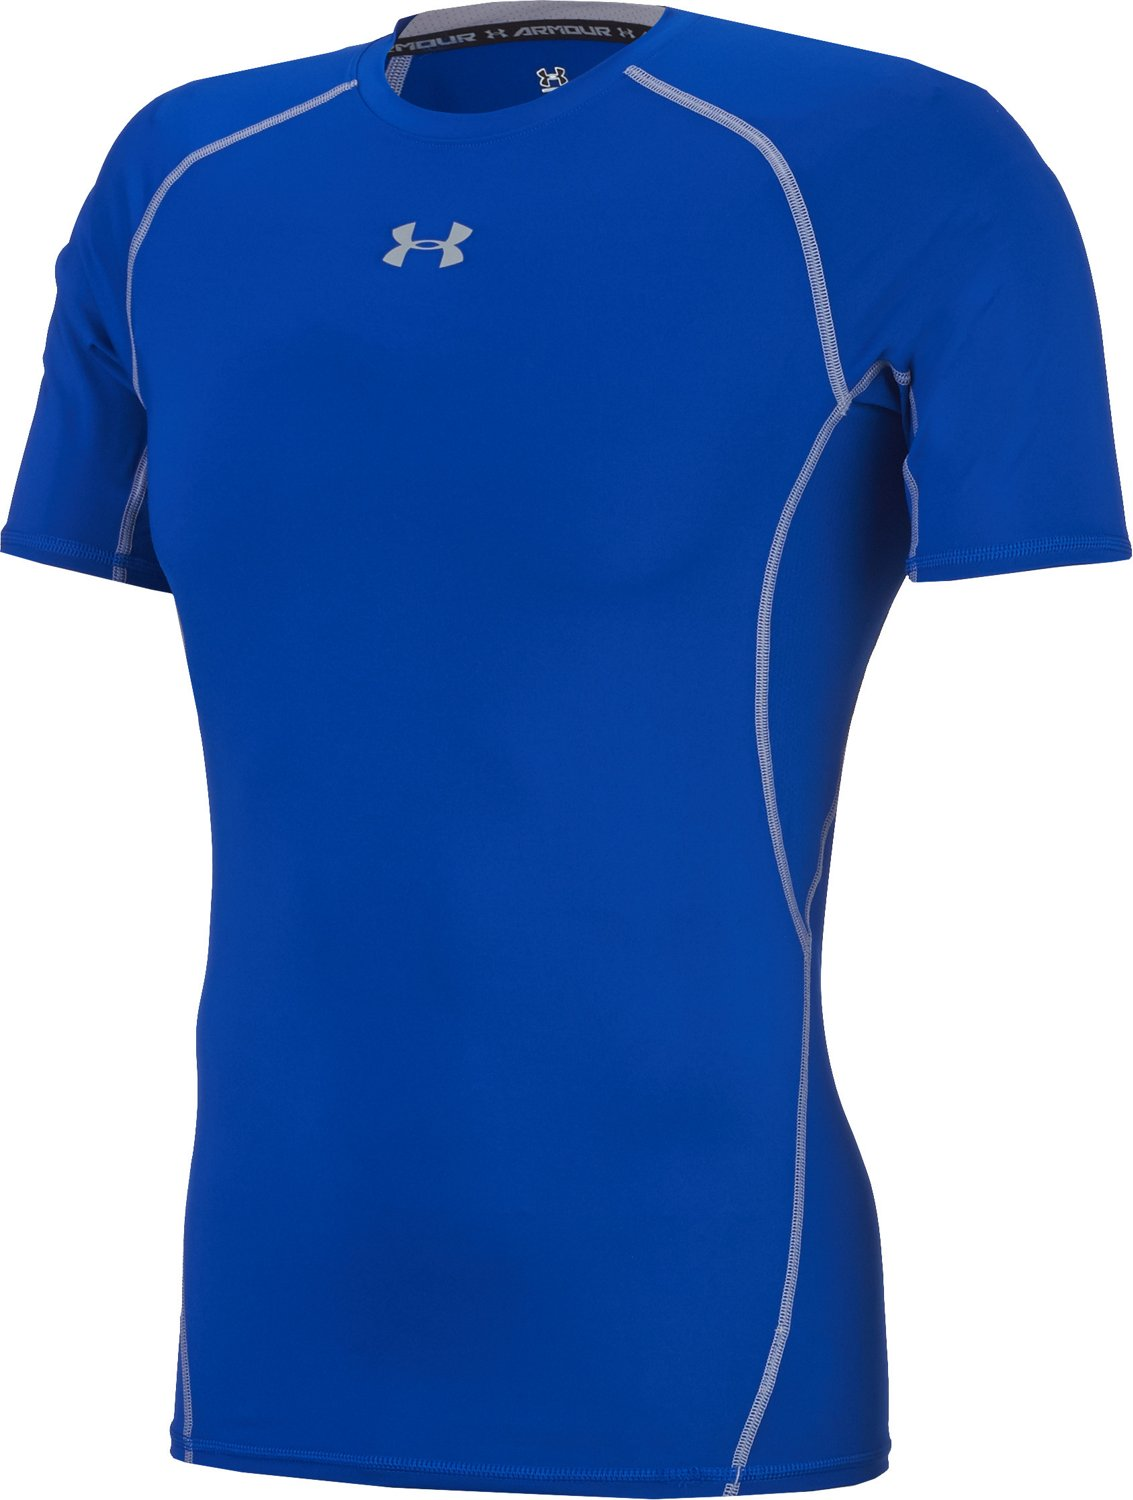 202bf411b Under Armour Men's HeatGear Armour Short Sleeve T-shirt | Academy